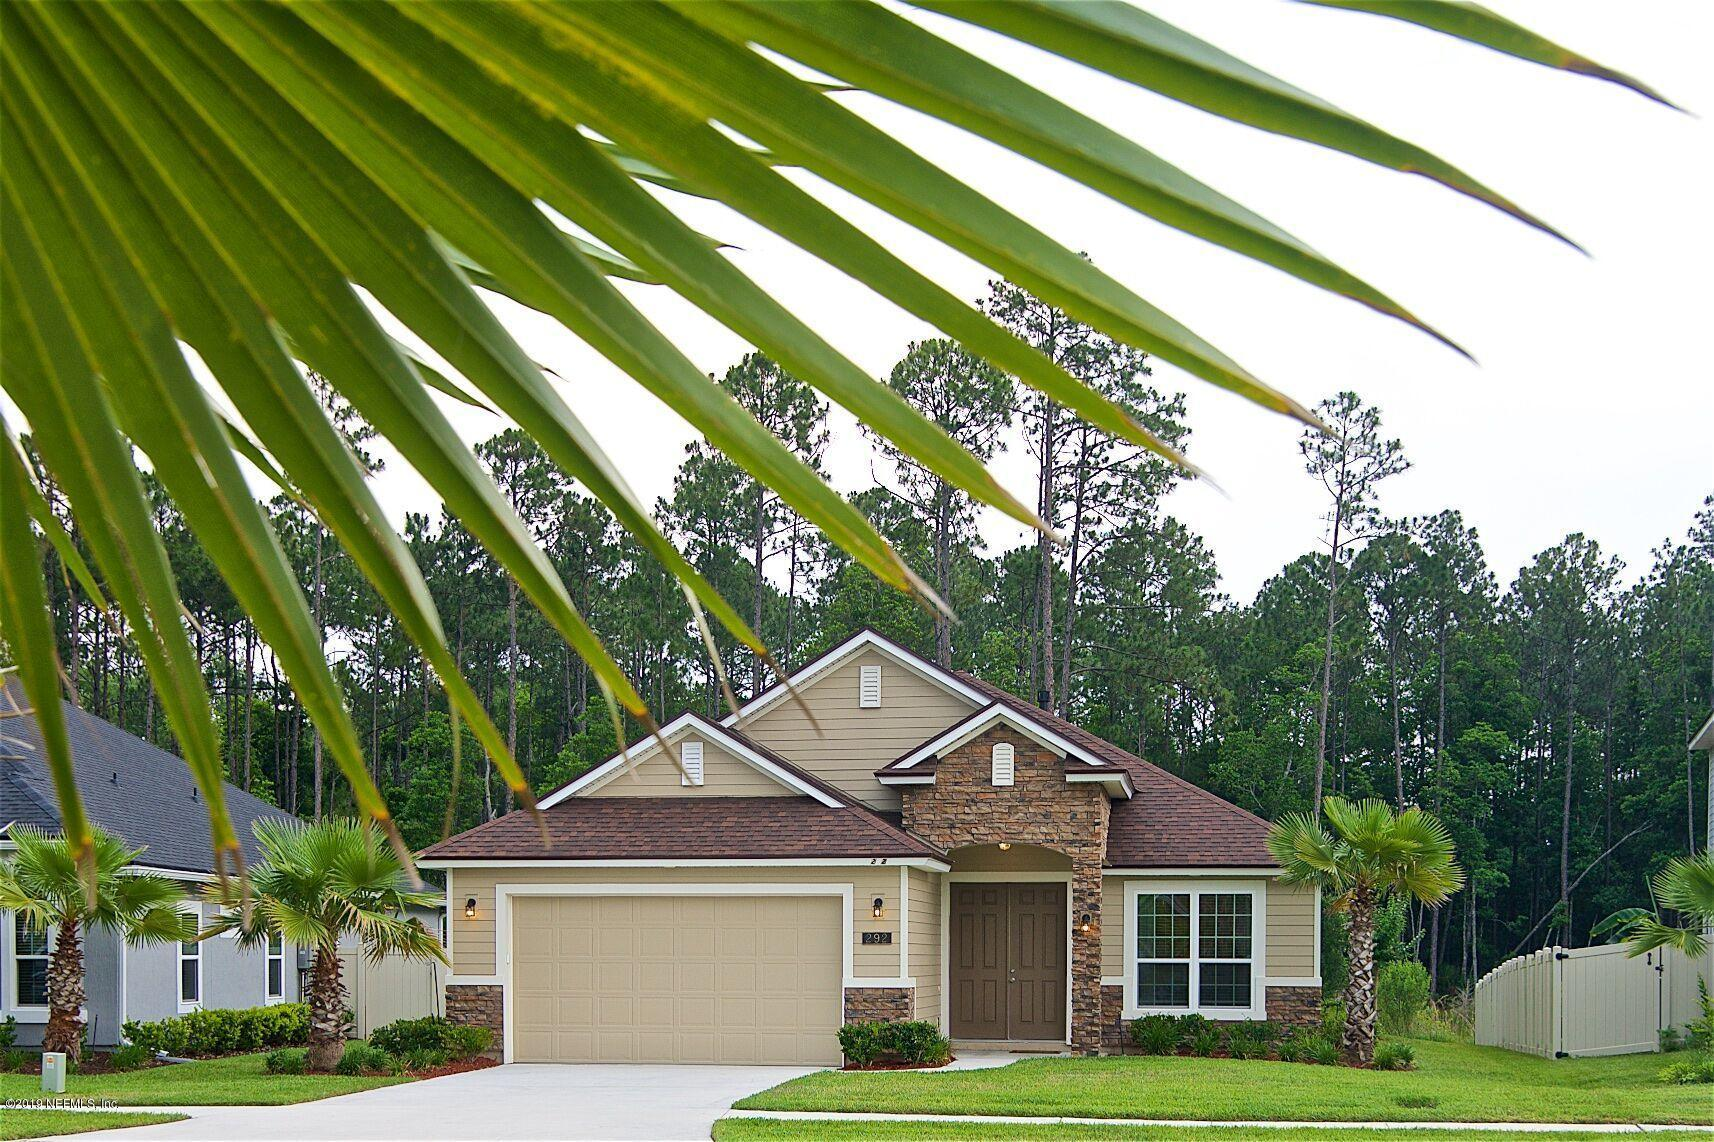 292 COCONUT PALM, PONTE VEDRA, FLORIDA 32081, 3 Bedrooms Bedrooms, ,2 BathroomsBathrooms,Residential - single family,For sale,COCONUT PALM,1000583